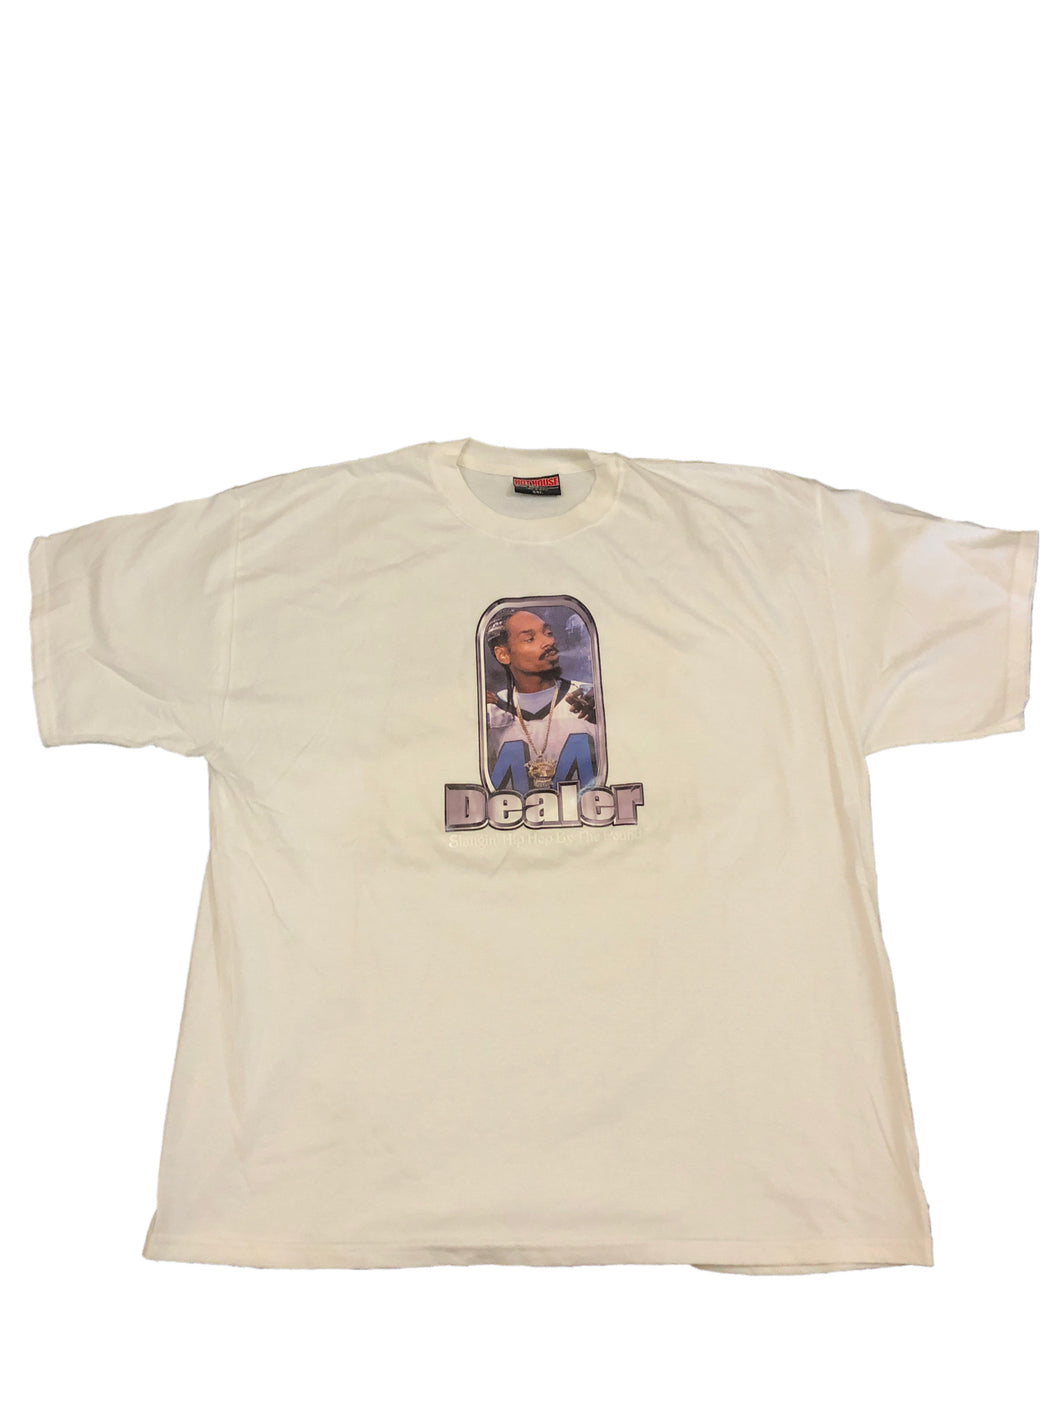 Snoop Dogg Dealer Tee